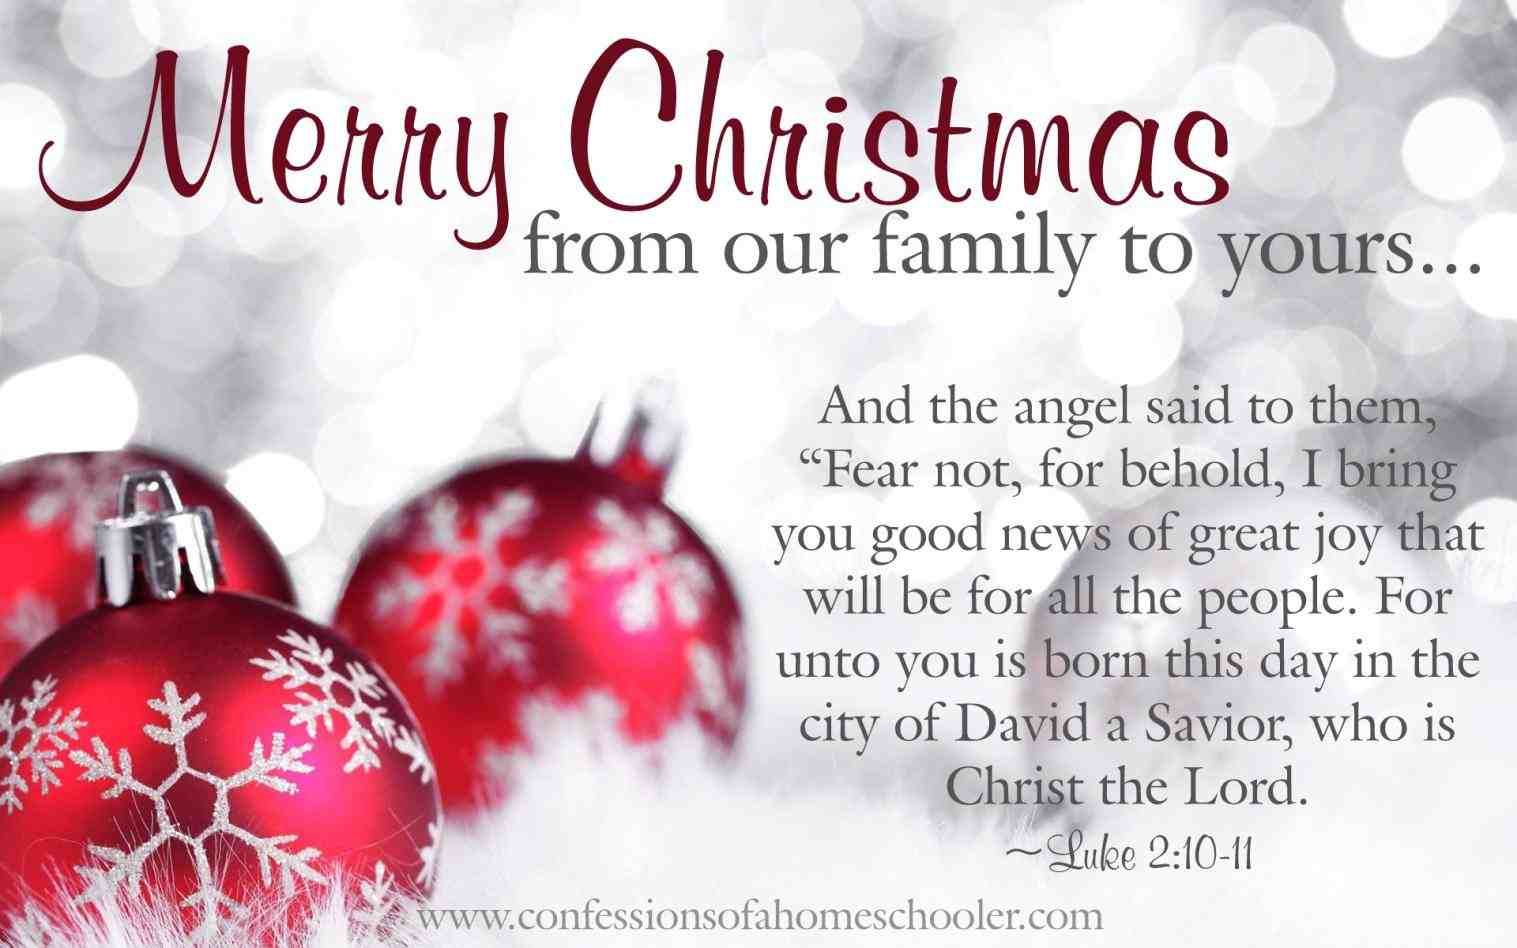 New merry christmas from our family to yours religious at ...